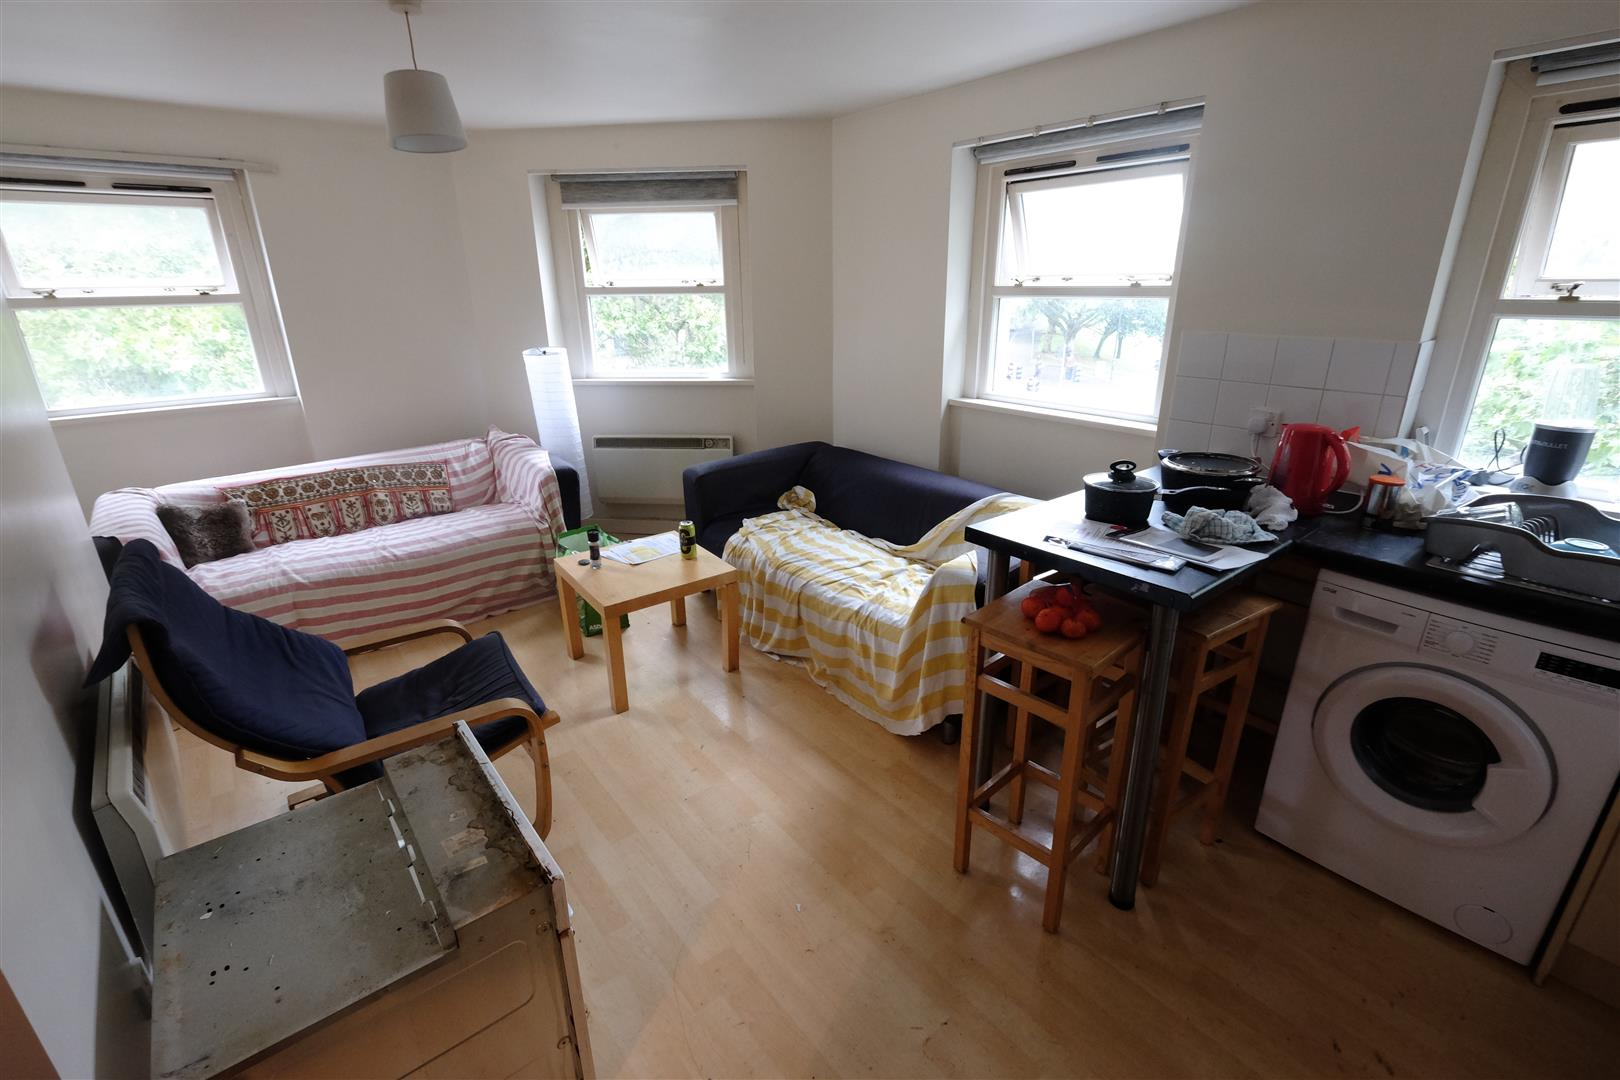 Images for 5 BED STUDENT FLAT - BALDWIN ST EAID:hollismoapi BID:11